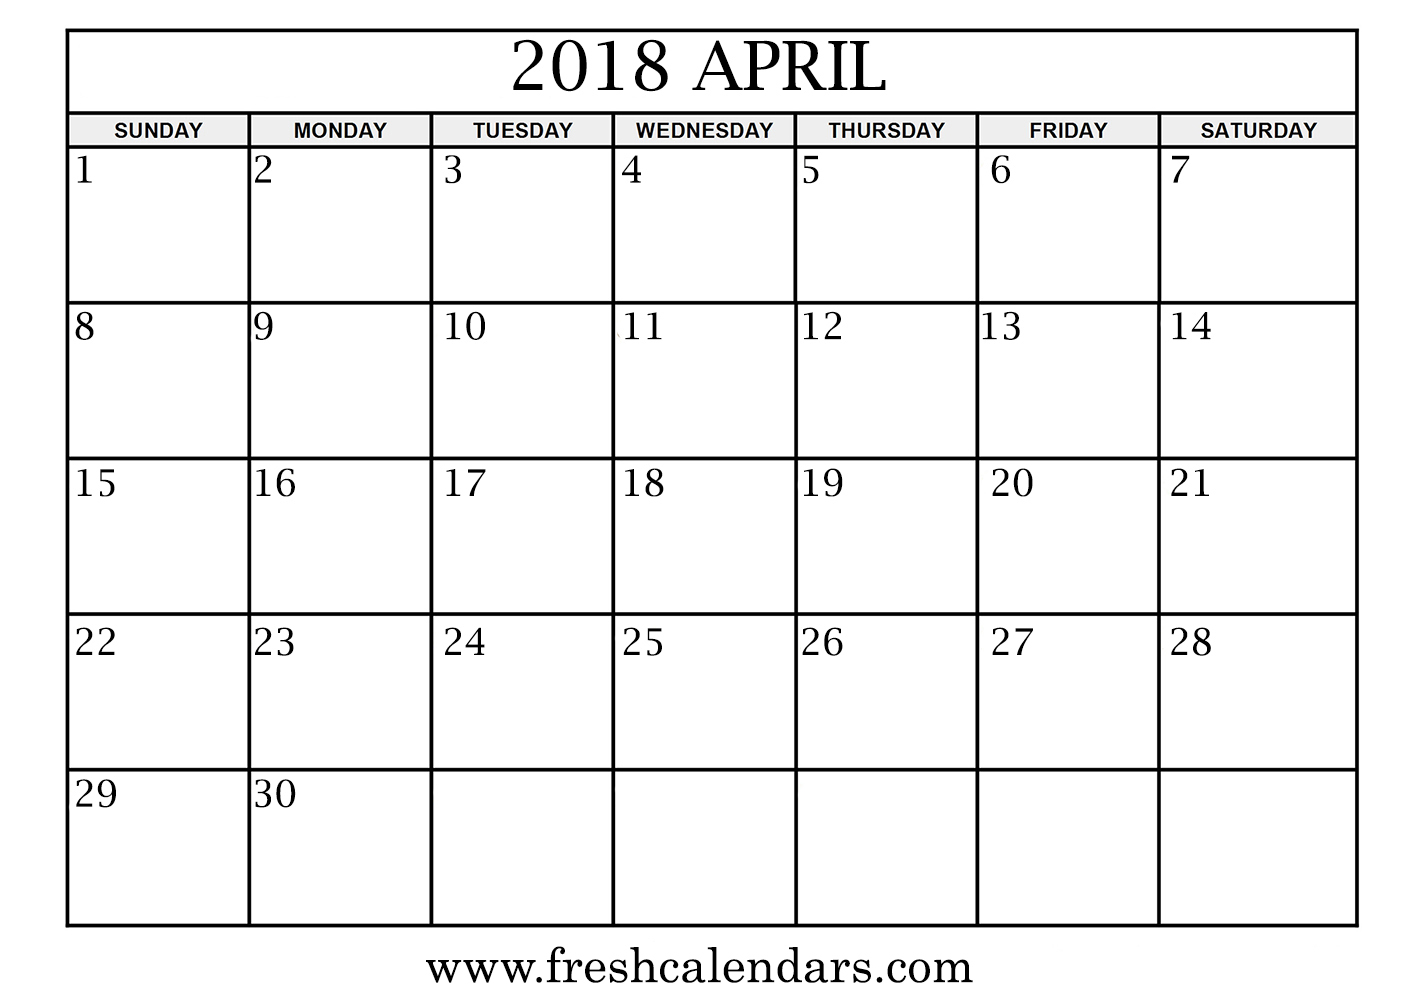 picture relating to April Free Printable Calendar referred to as April 2018 Calendar Printable - New Calendars